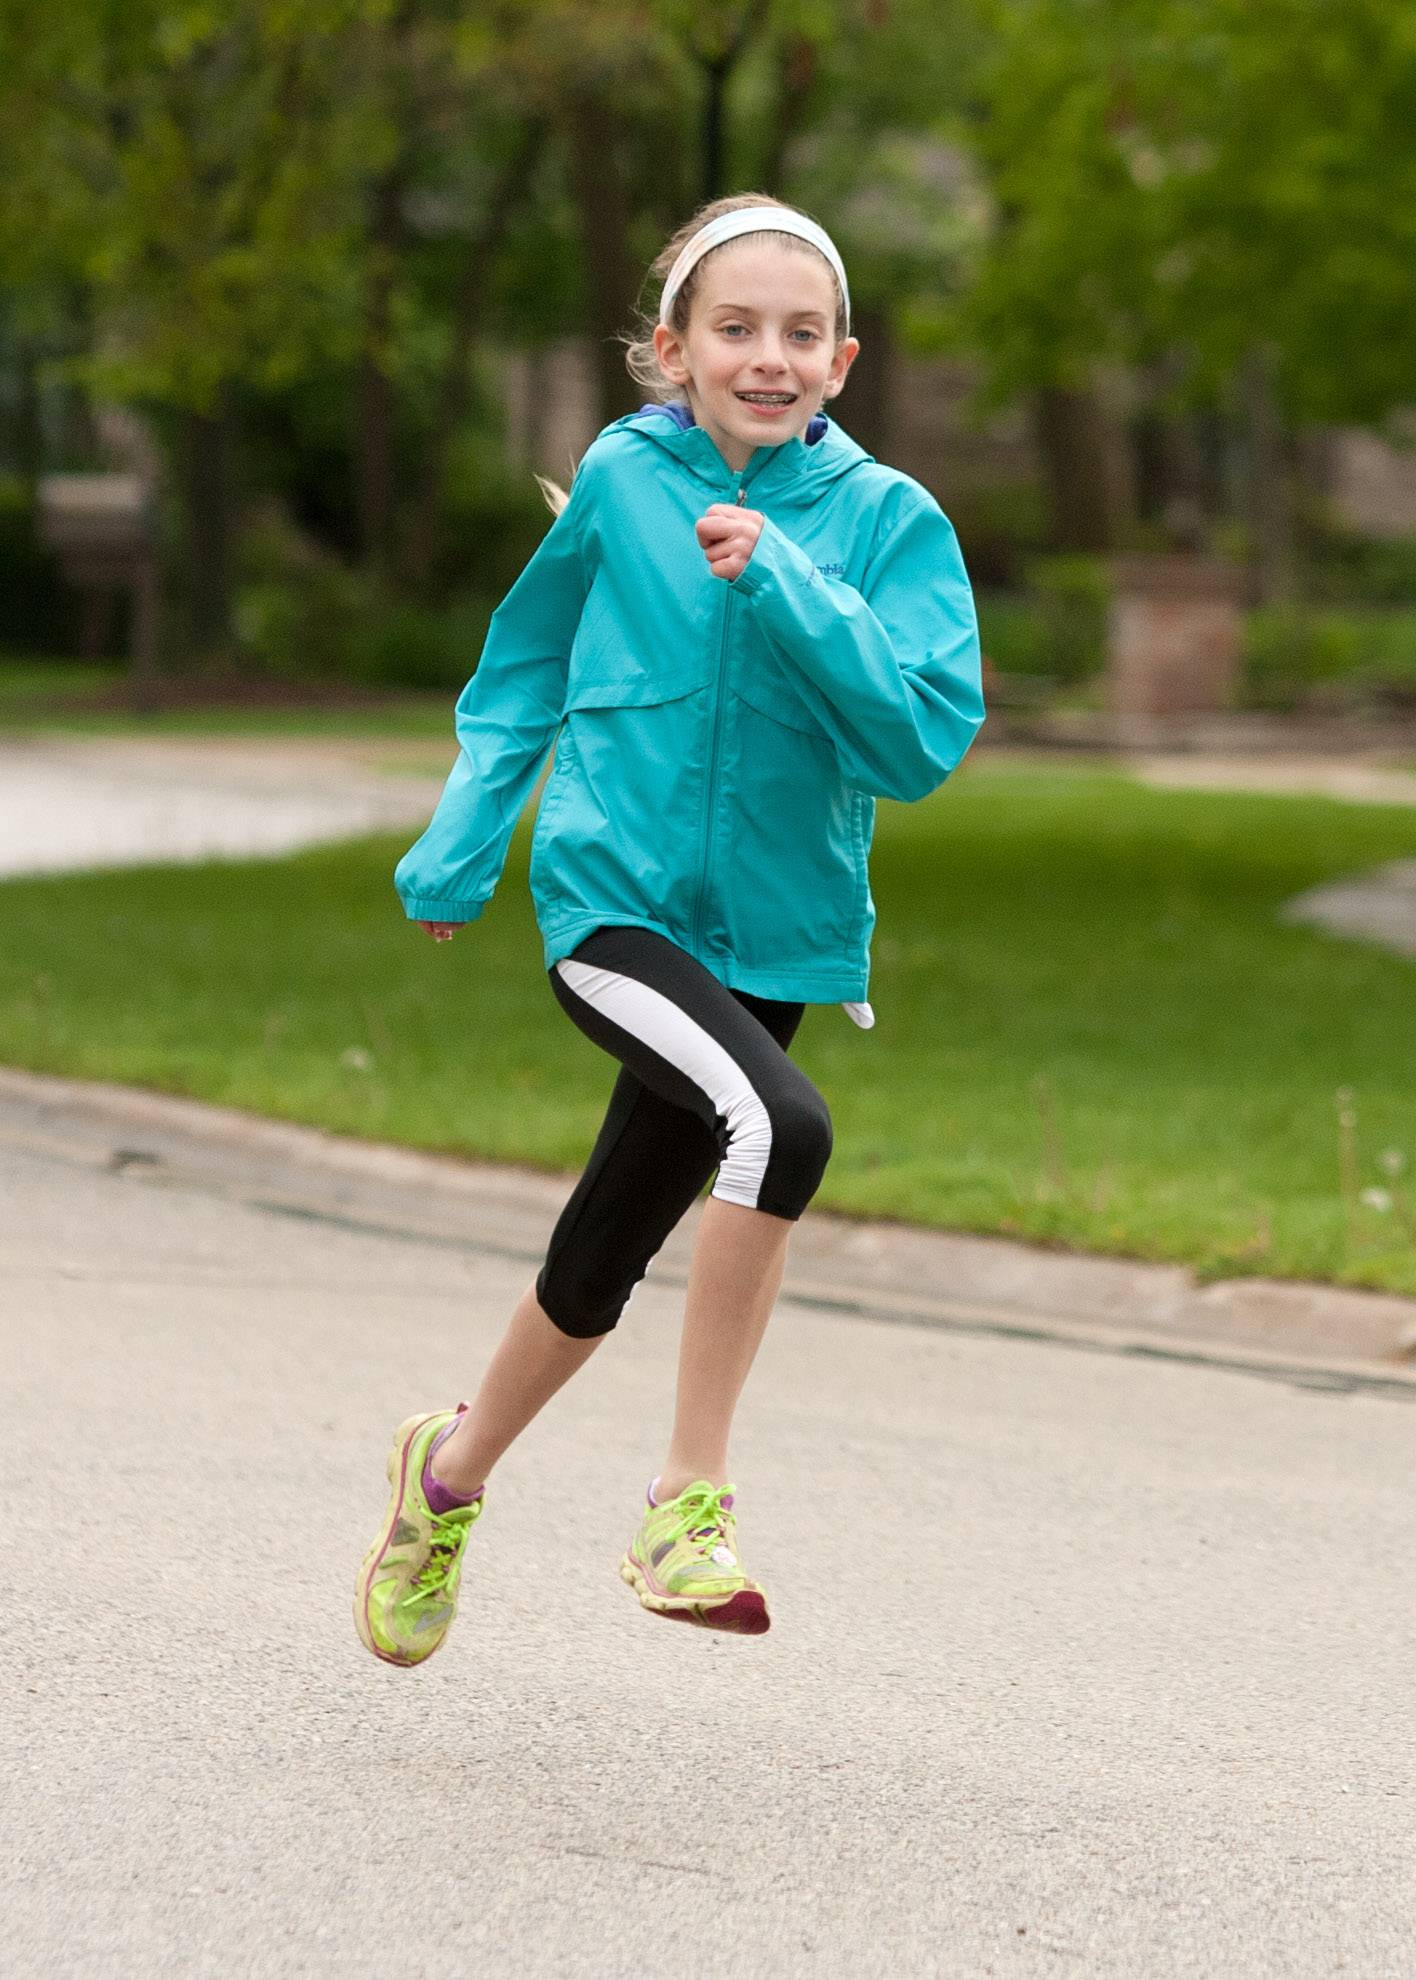 Alex Morris, 12, of Naperville is planning her own 5K race June 8 to raise funds for the Celiac Disease Foundation. She was diagnosed last year with Celiac disease, which she treats by avoiding eating anything with gluten, including her former favorite food, French bread.